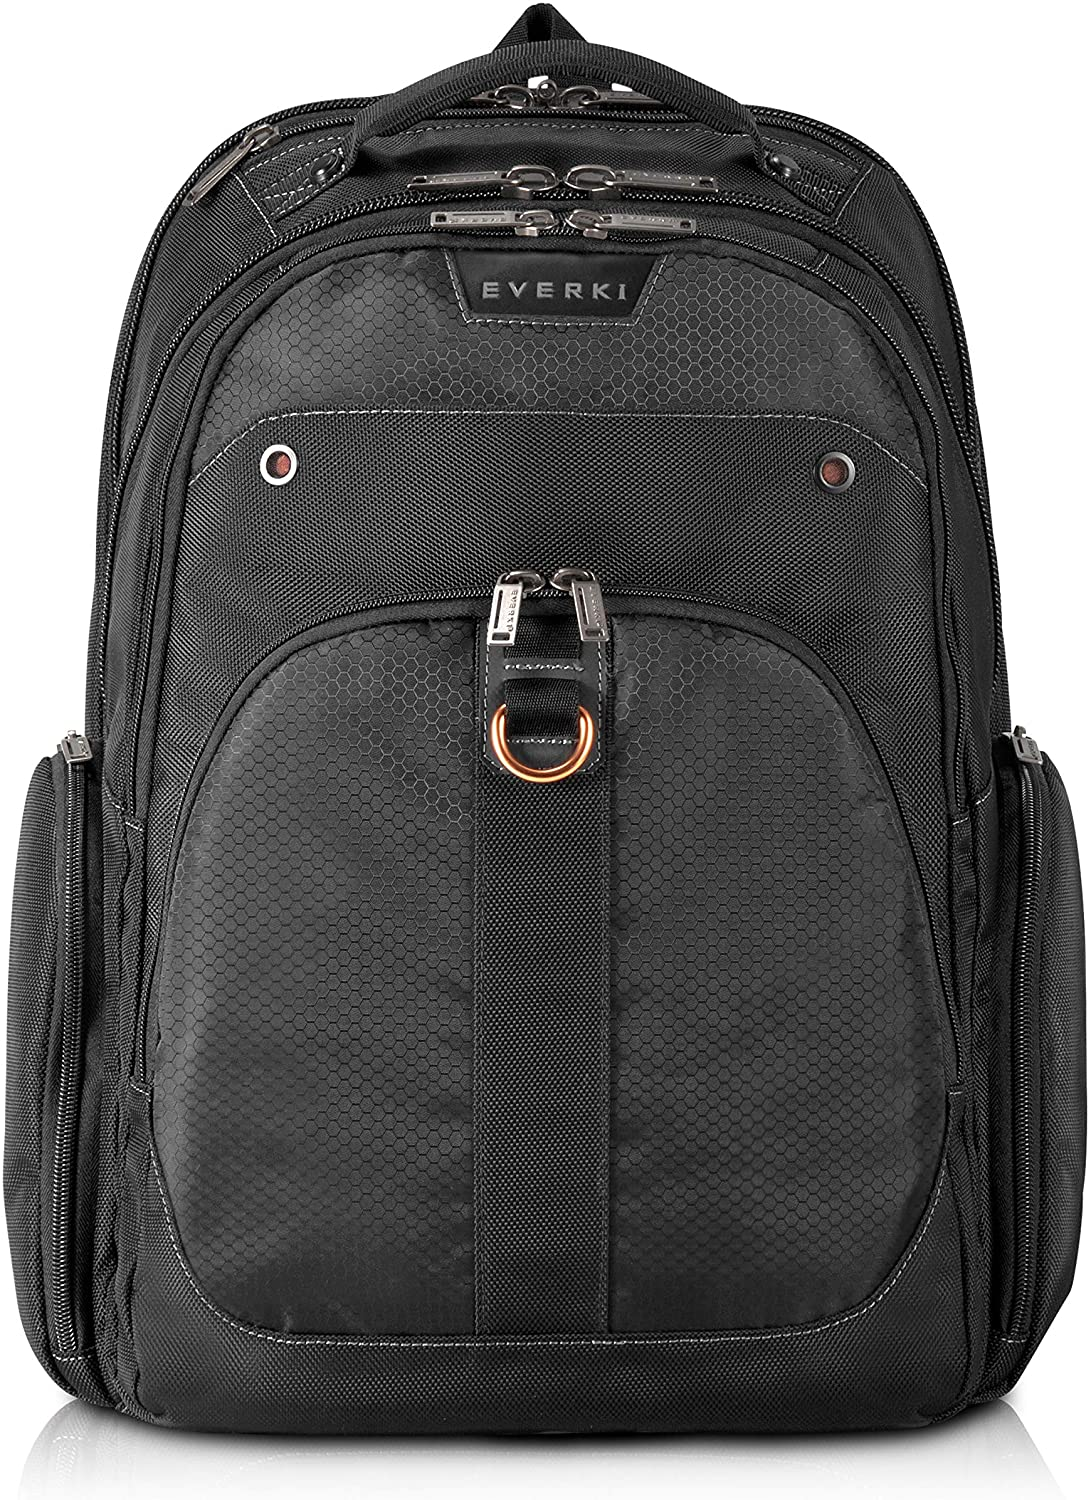 Everki EKP121S15 Atlas Checkpoint Friendly Laptop Backpack, 11-Inch to 15.6-Inch Adaptable Compartment, Black